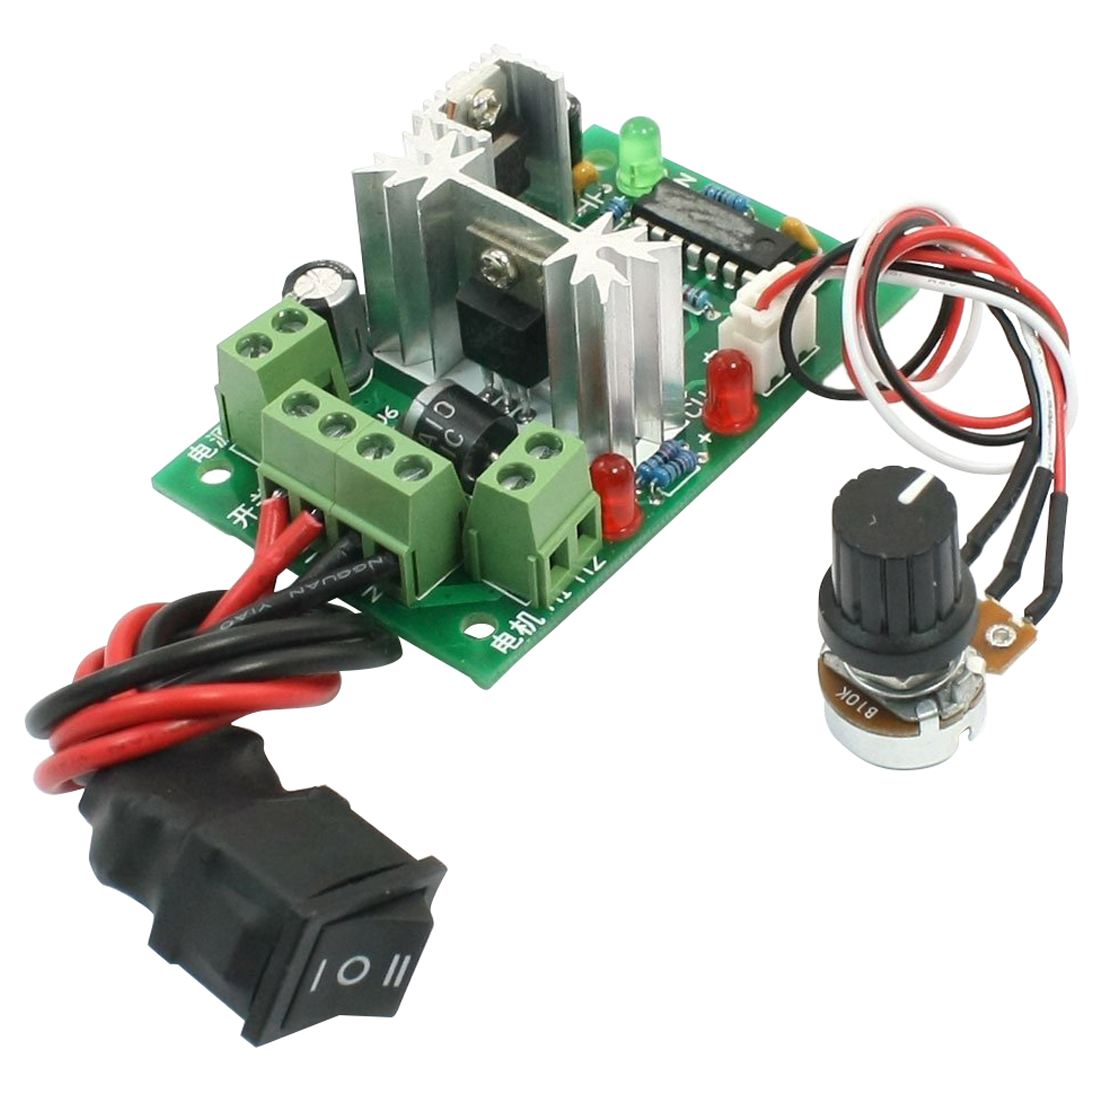 High quality 12v 24v 30v 120w pwm adjustable volt dc motor for 90 volt dc motor controller